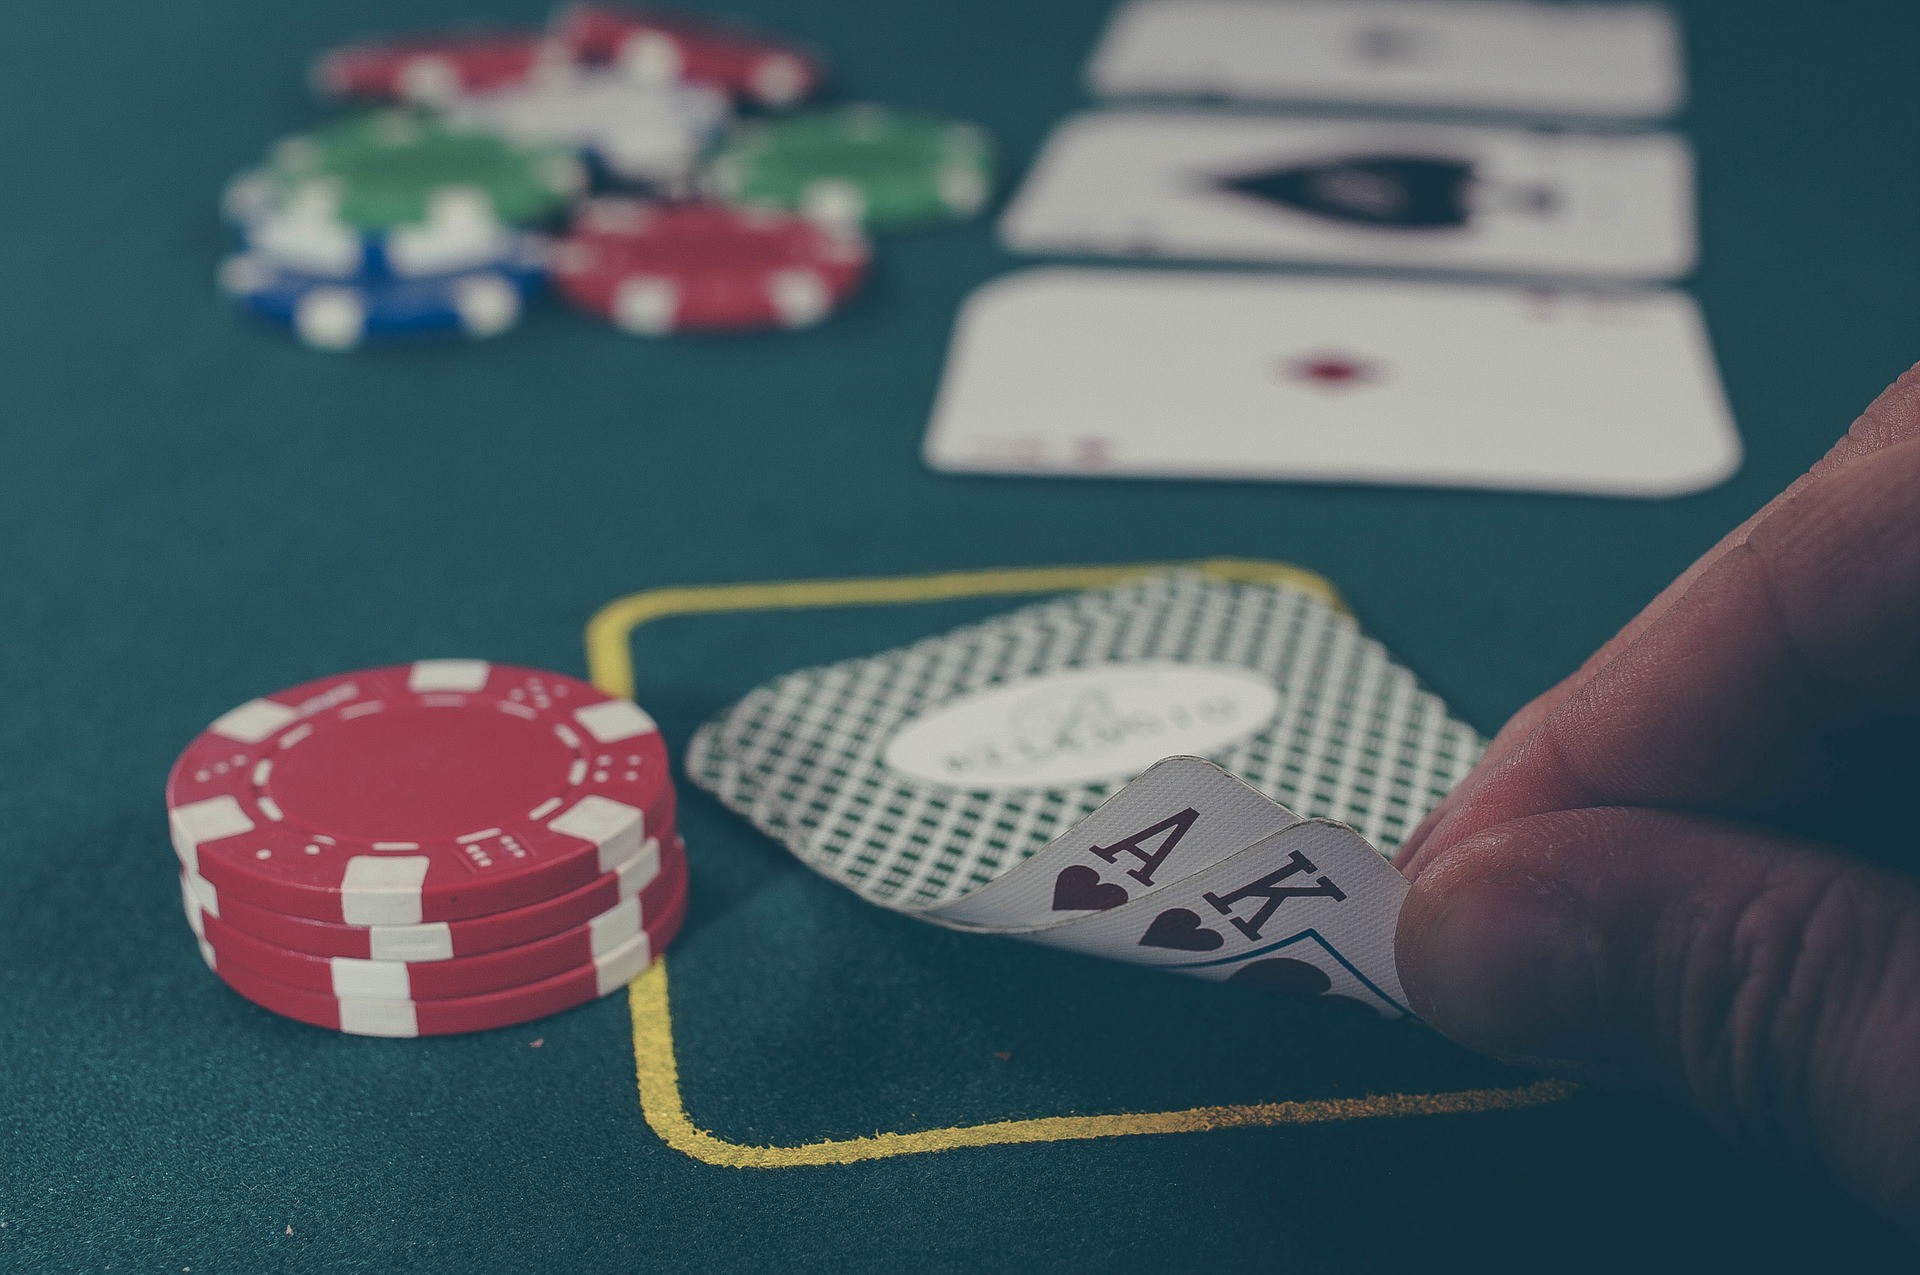 Life is like a poker game. Pair of cards and chips. Ace and King.